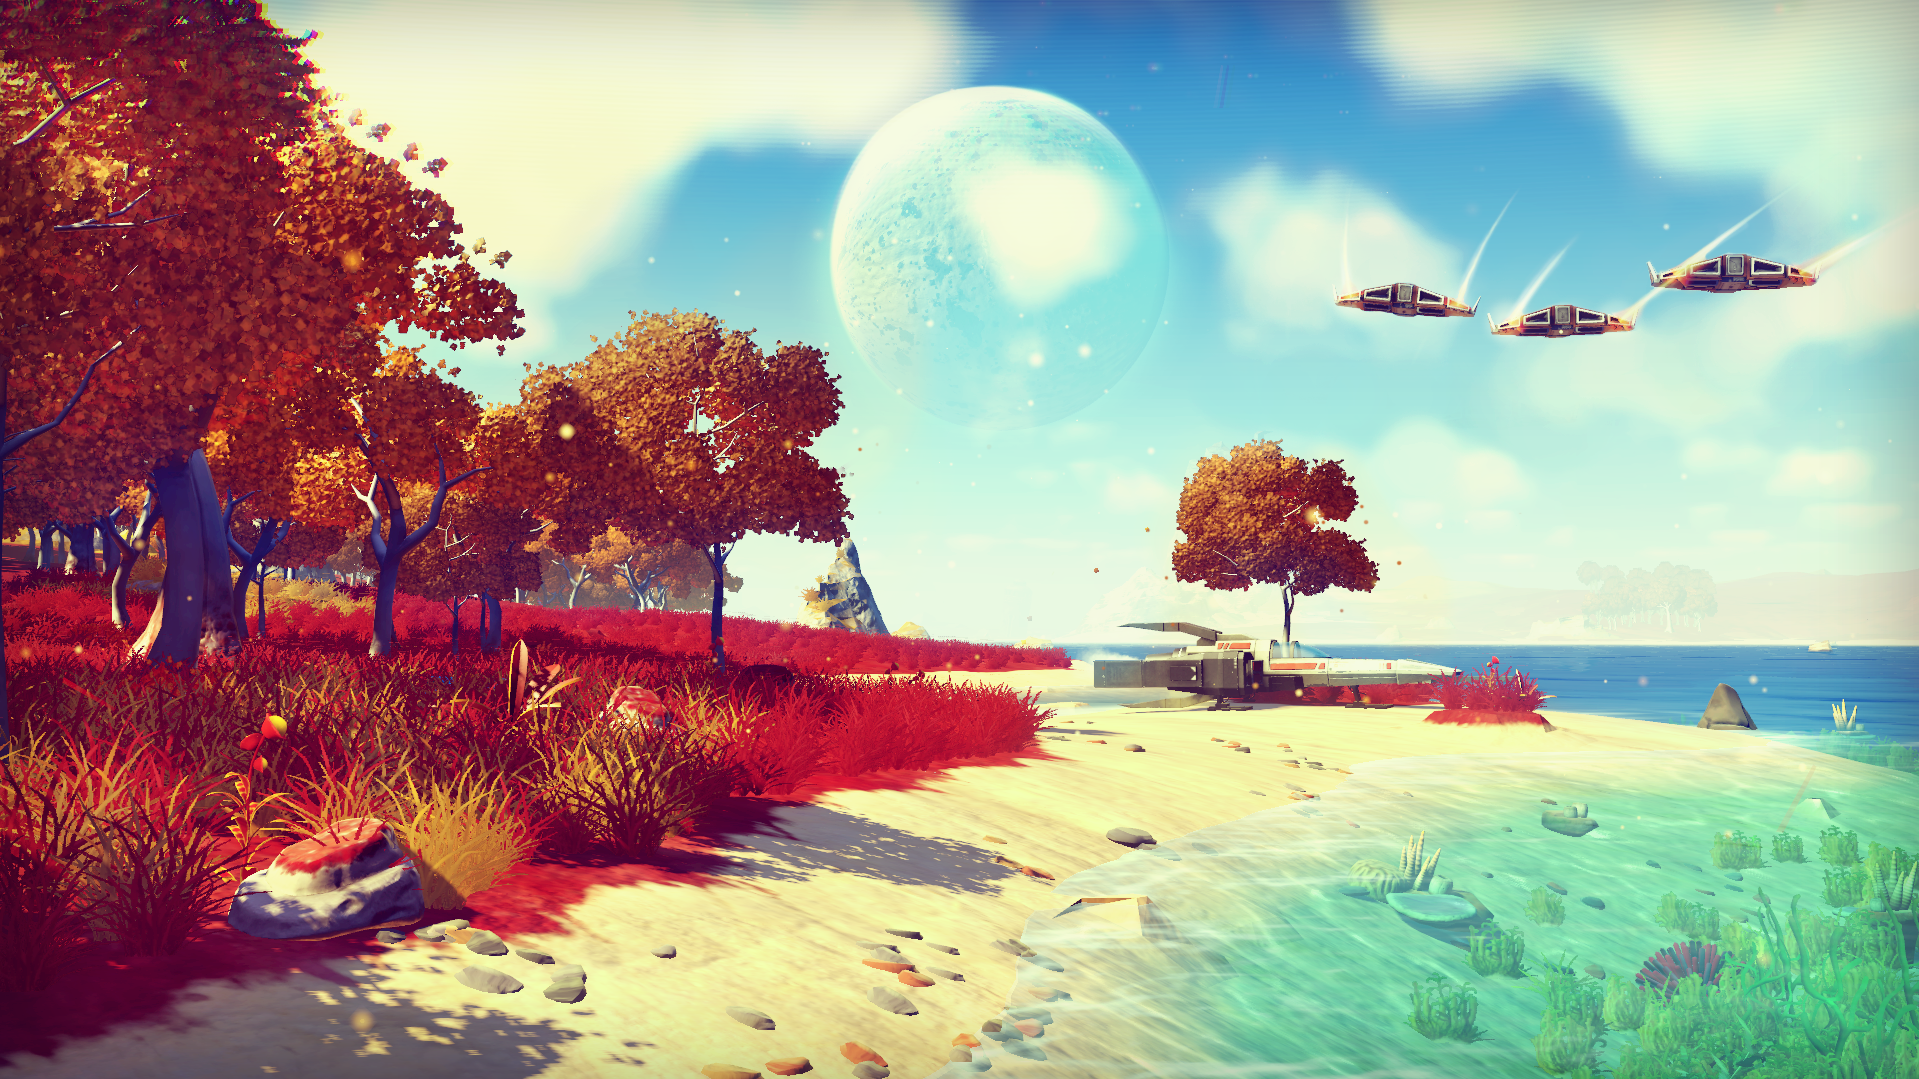 No Man's Sky: Music for an Infinite Universe album from 65daysofstatic